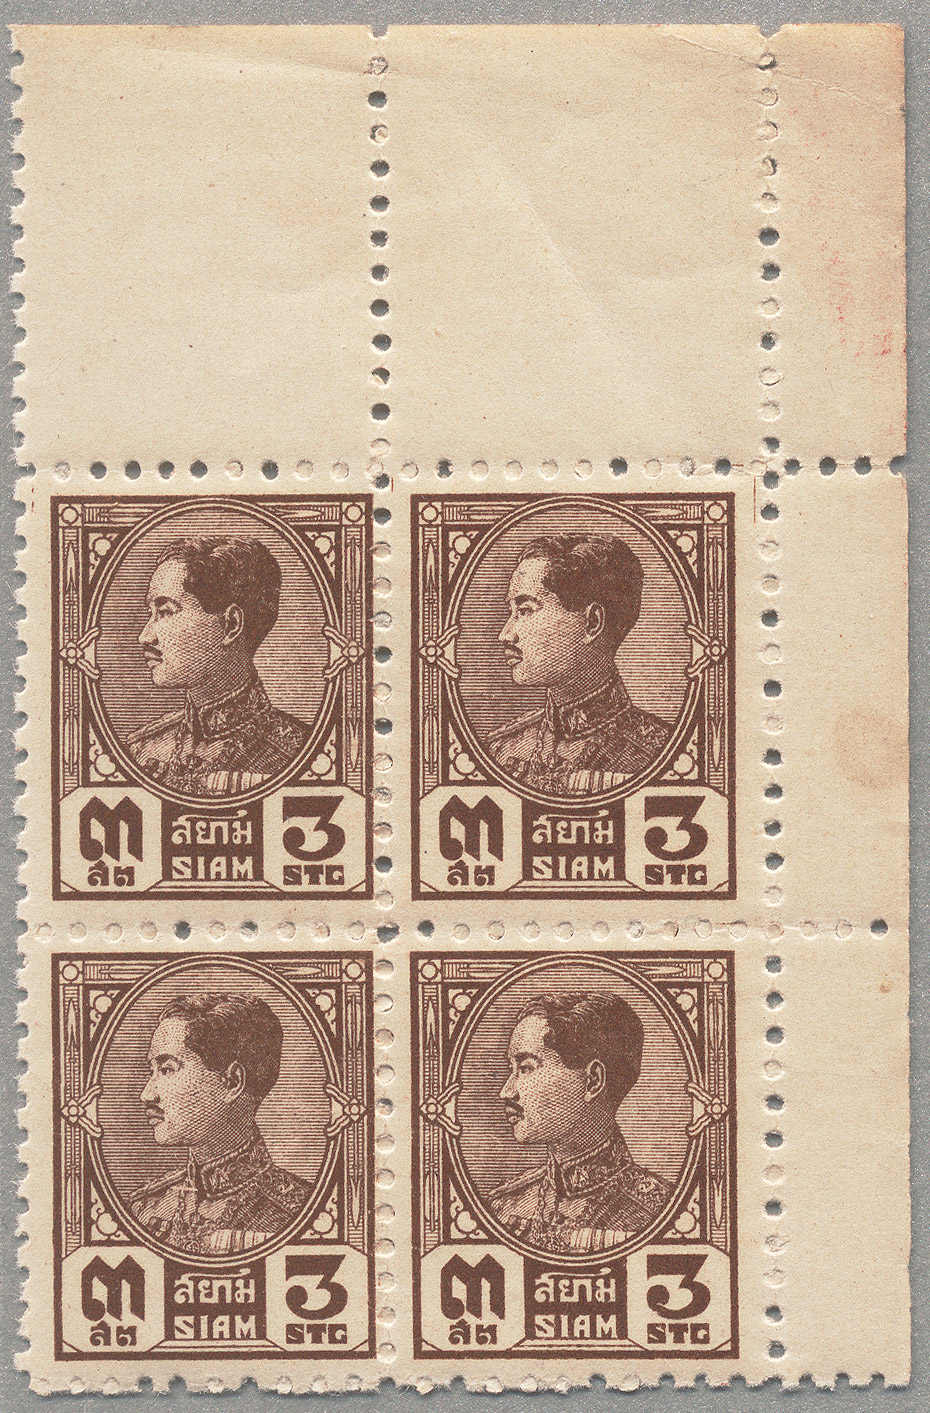 Lot 30017 - Asia without China/Malaya thailand -  classicphil GmbH 8'th classicphil Auction - Day 3